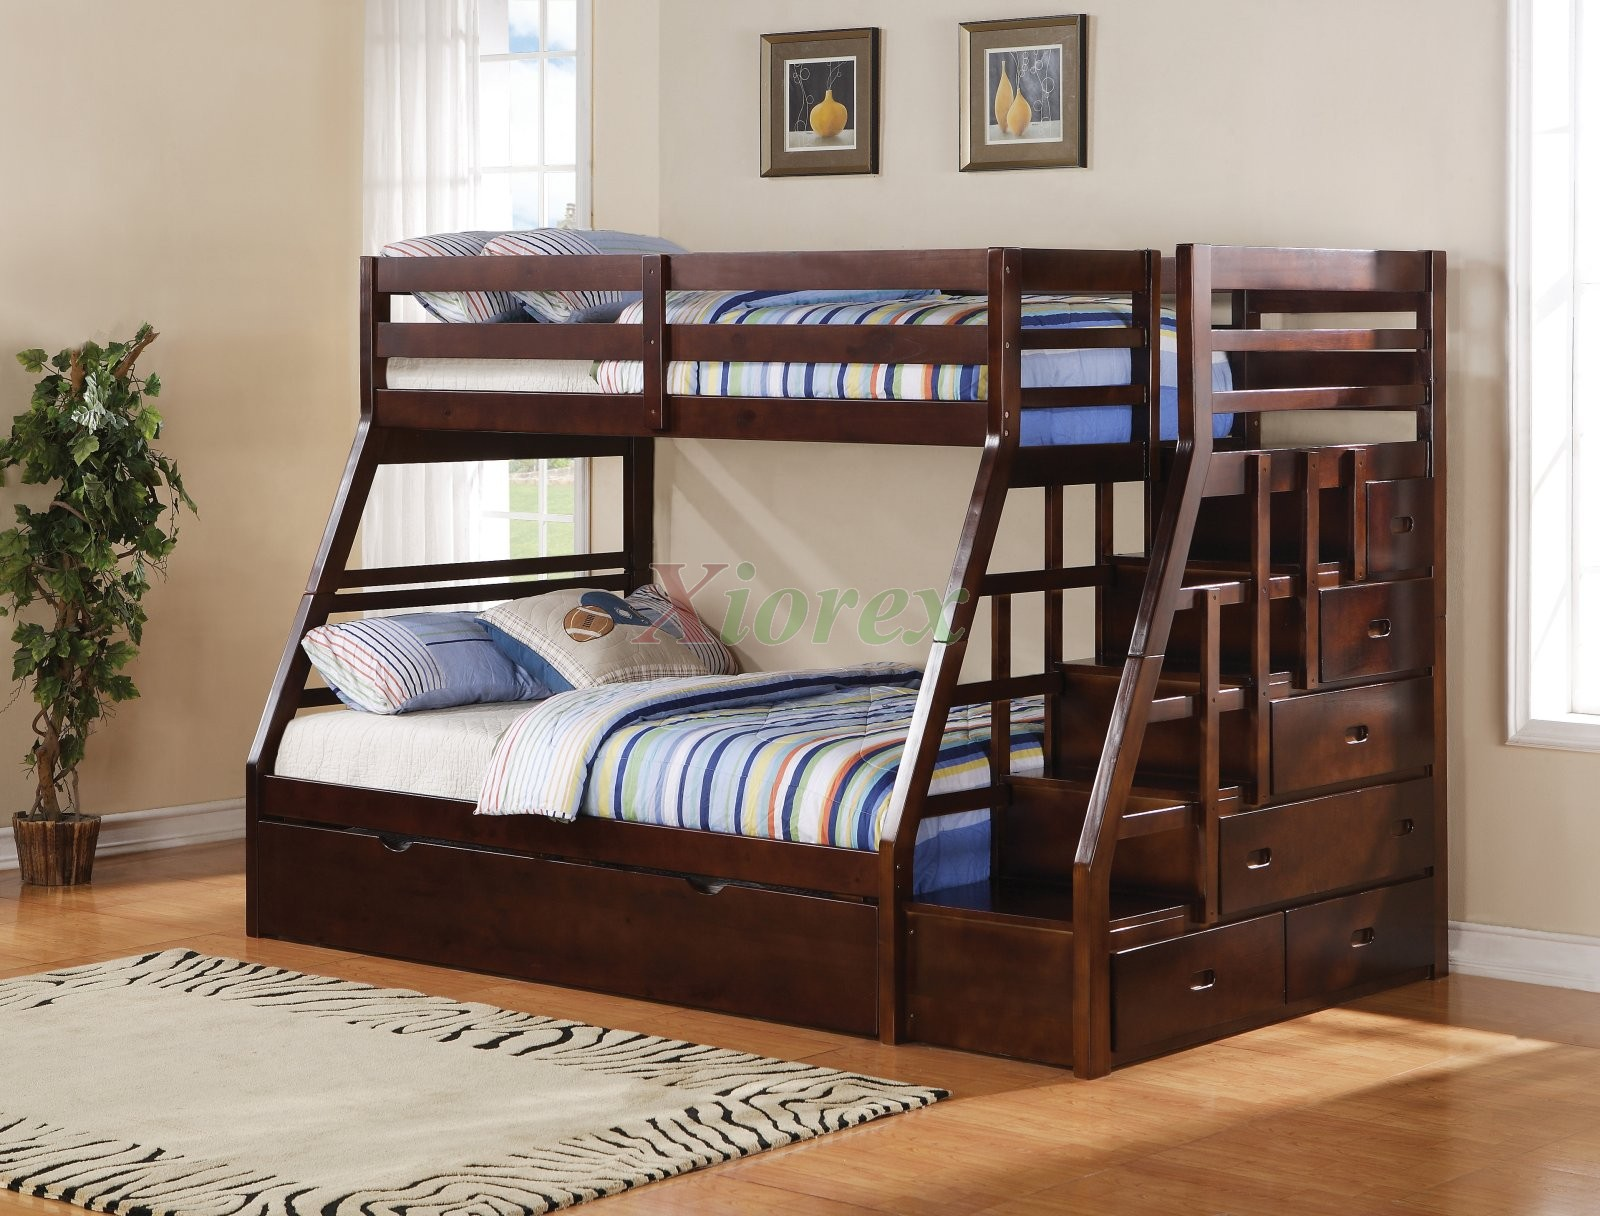 Tips To Choose An Excellent Bunk Bed Mattress